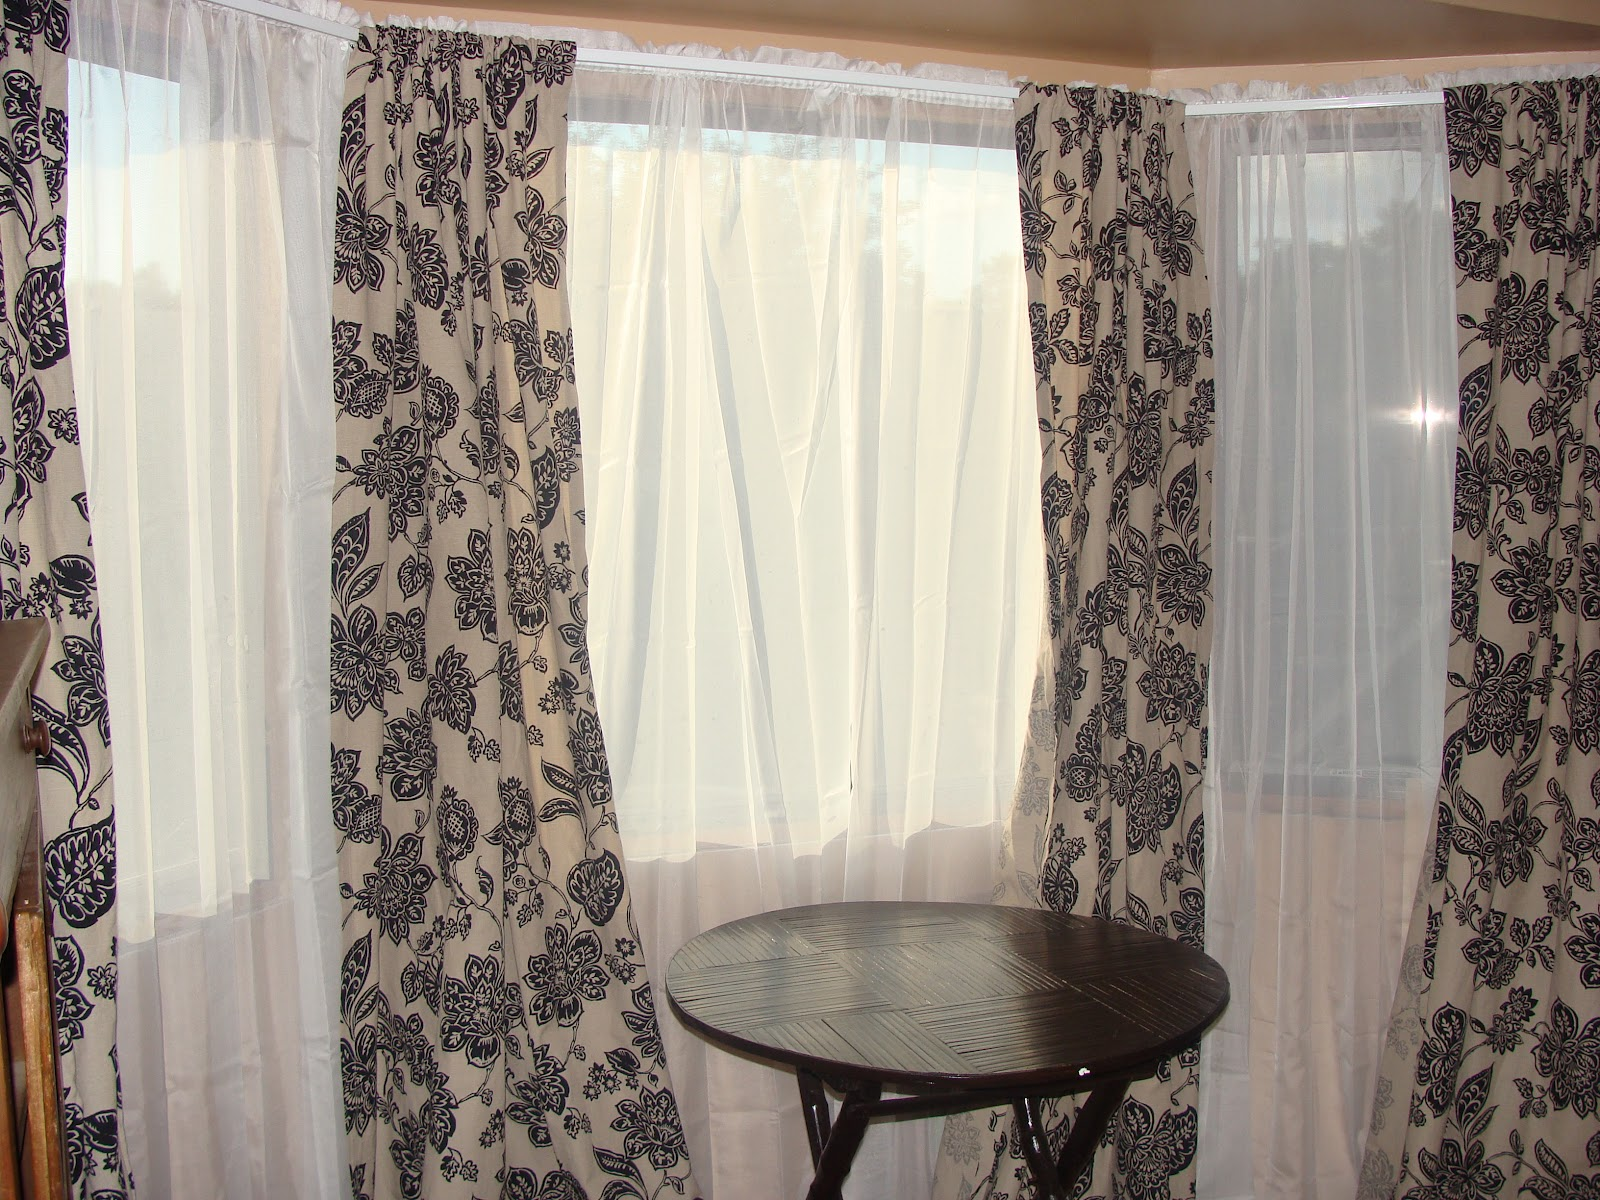 Best Sheer Fabric For Curtains Owen Family Six Bay Window Curtains